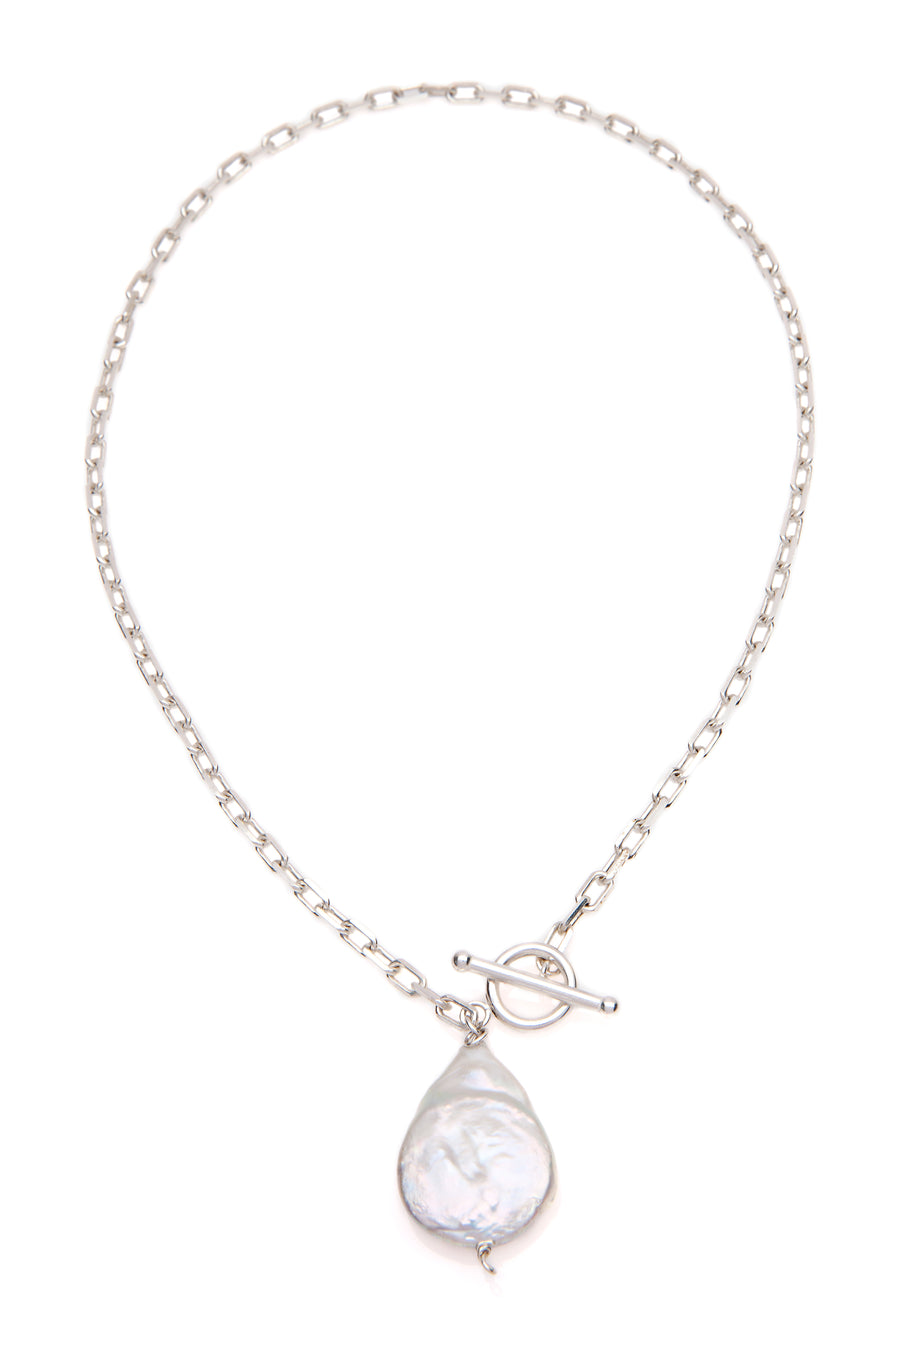 Freshwater Pearl Fob Necklace Silver